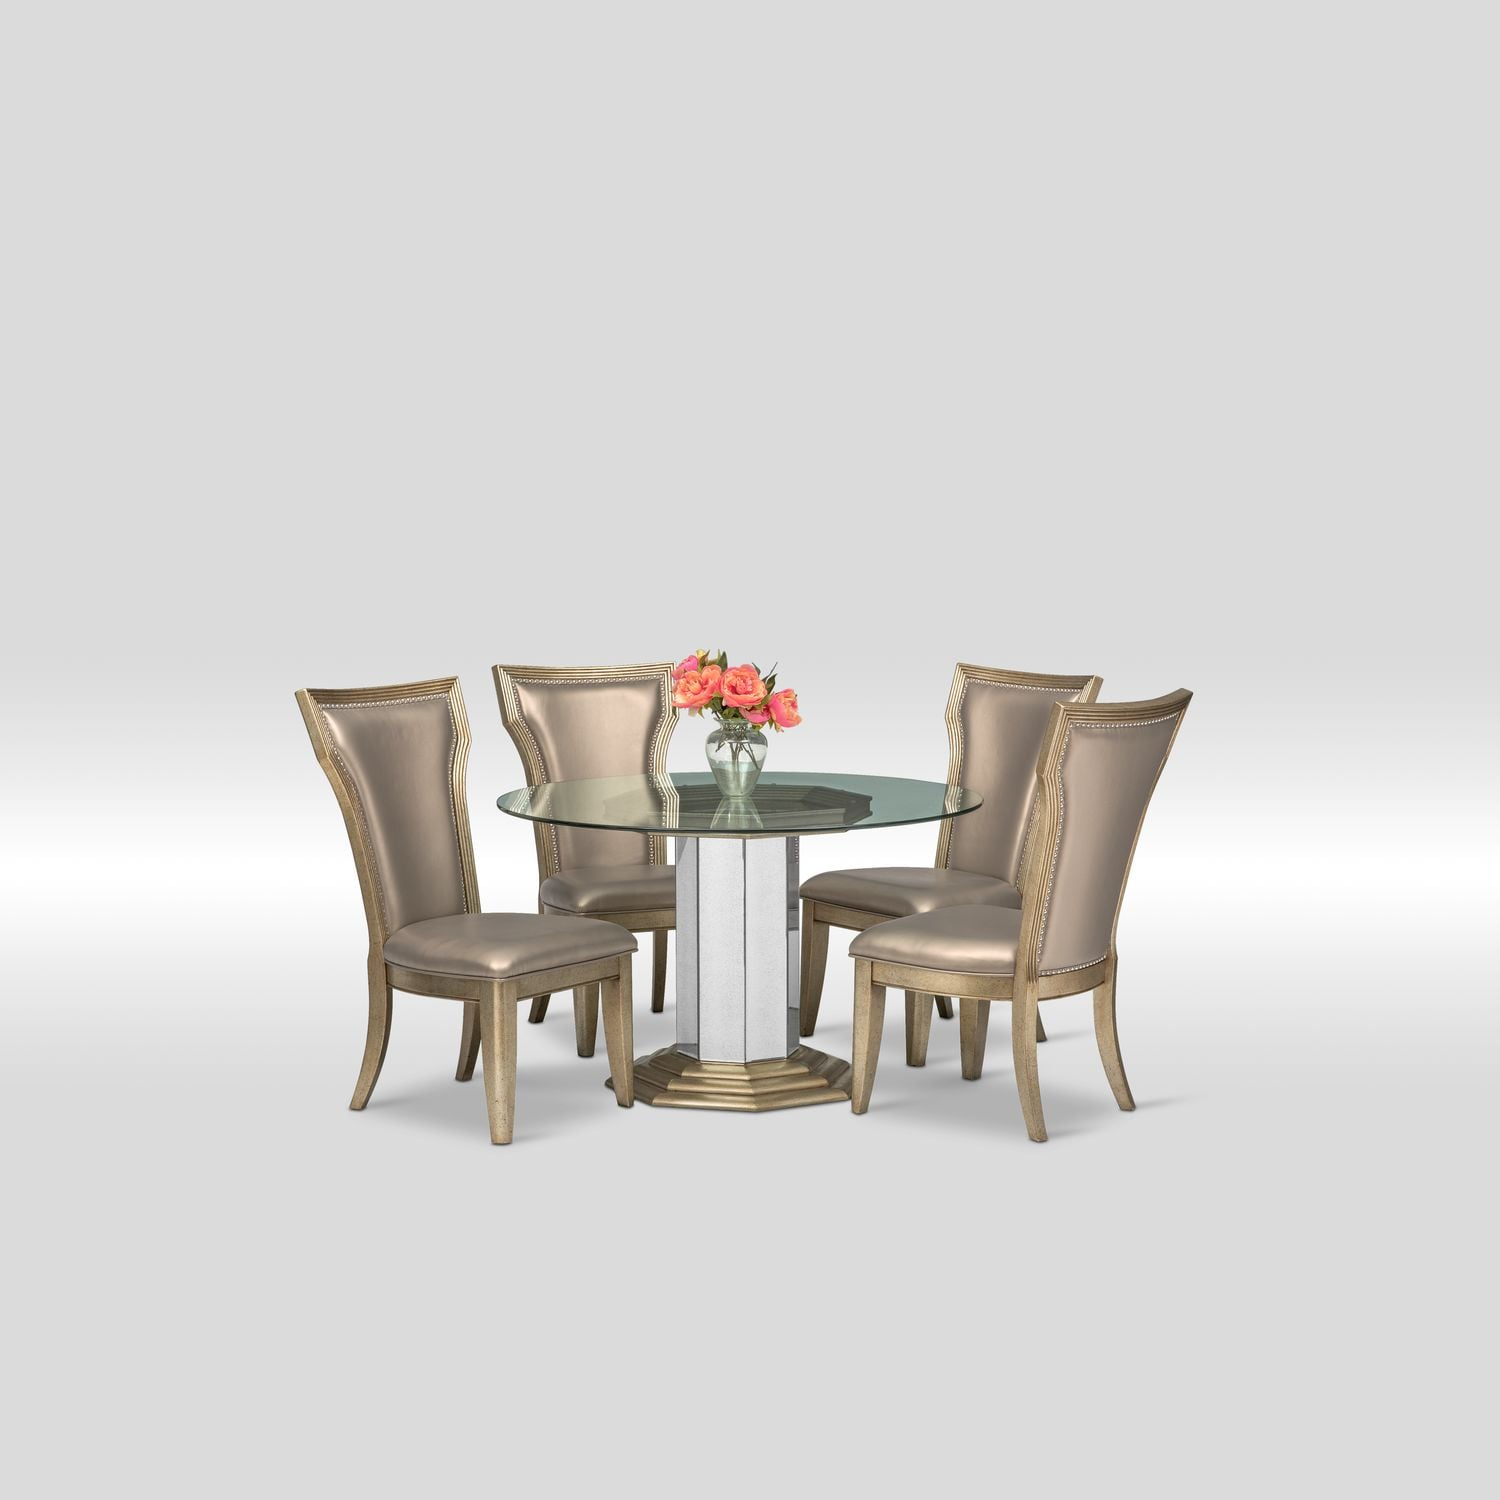 Value City Dining Room Furniture: Angelina Round Table And 4 Side Chairs - Metallic